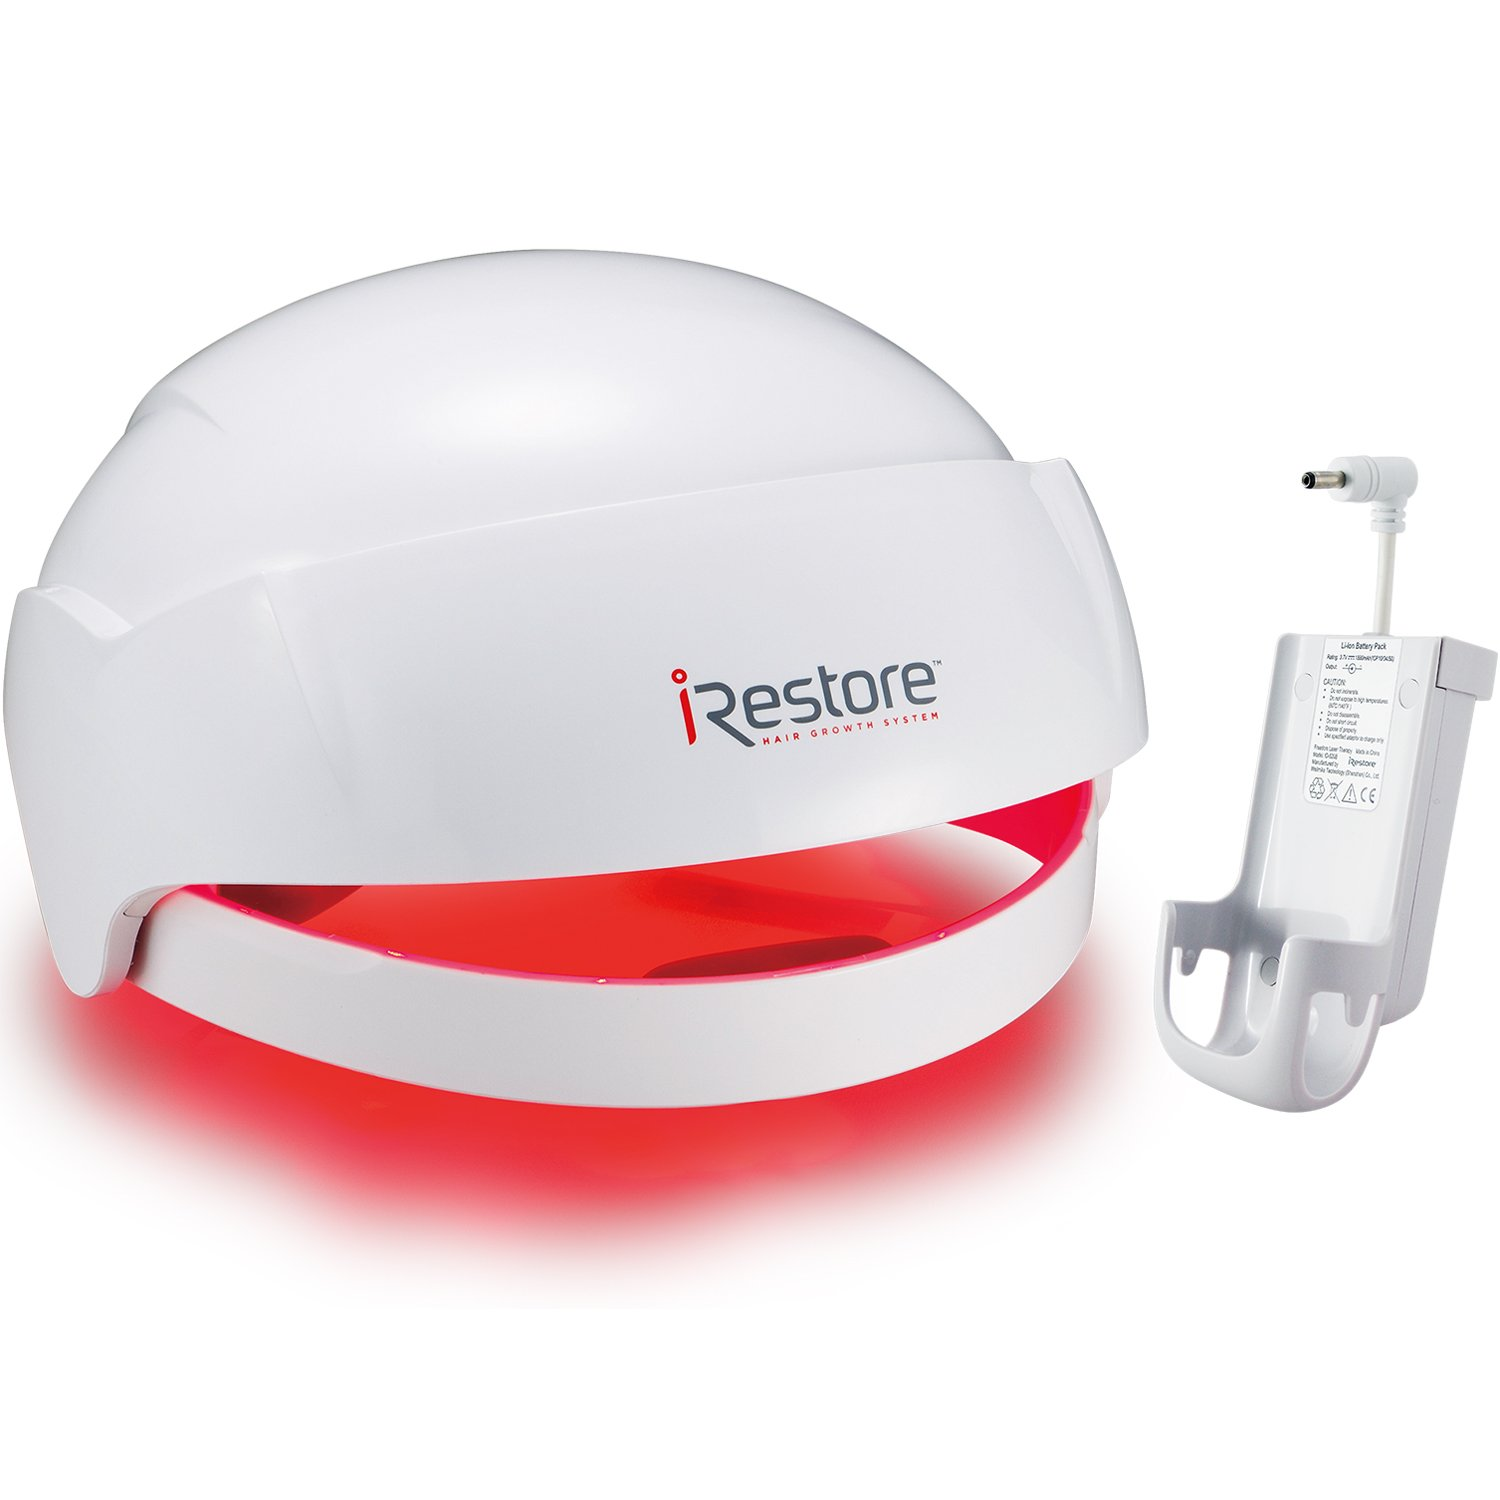 iRestore Laser Hair Growth System + Rechargeable Battery Pack - FDA-Cleared Hair Loss Product - Treats Thinning Hair for Men & Women - Laser Hair Therapy Restores Hair Thickness, Volume, Density by iRestore